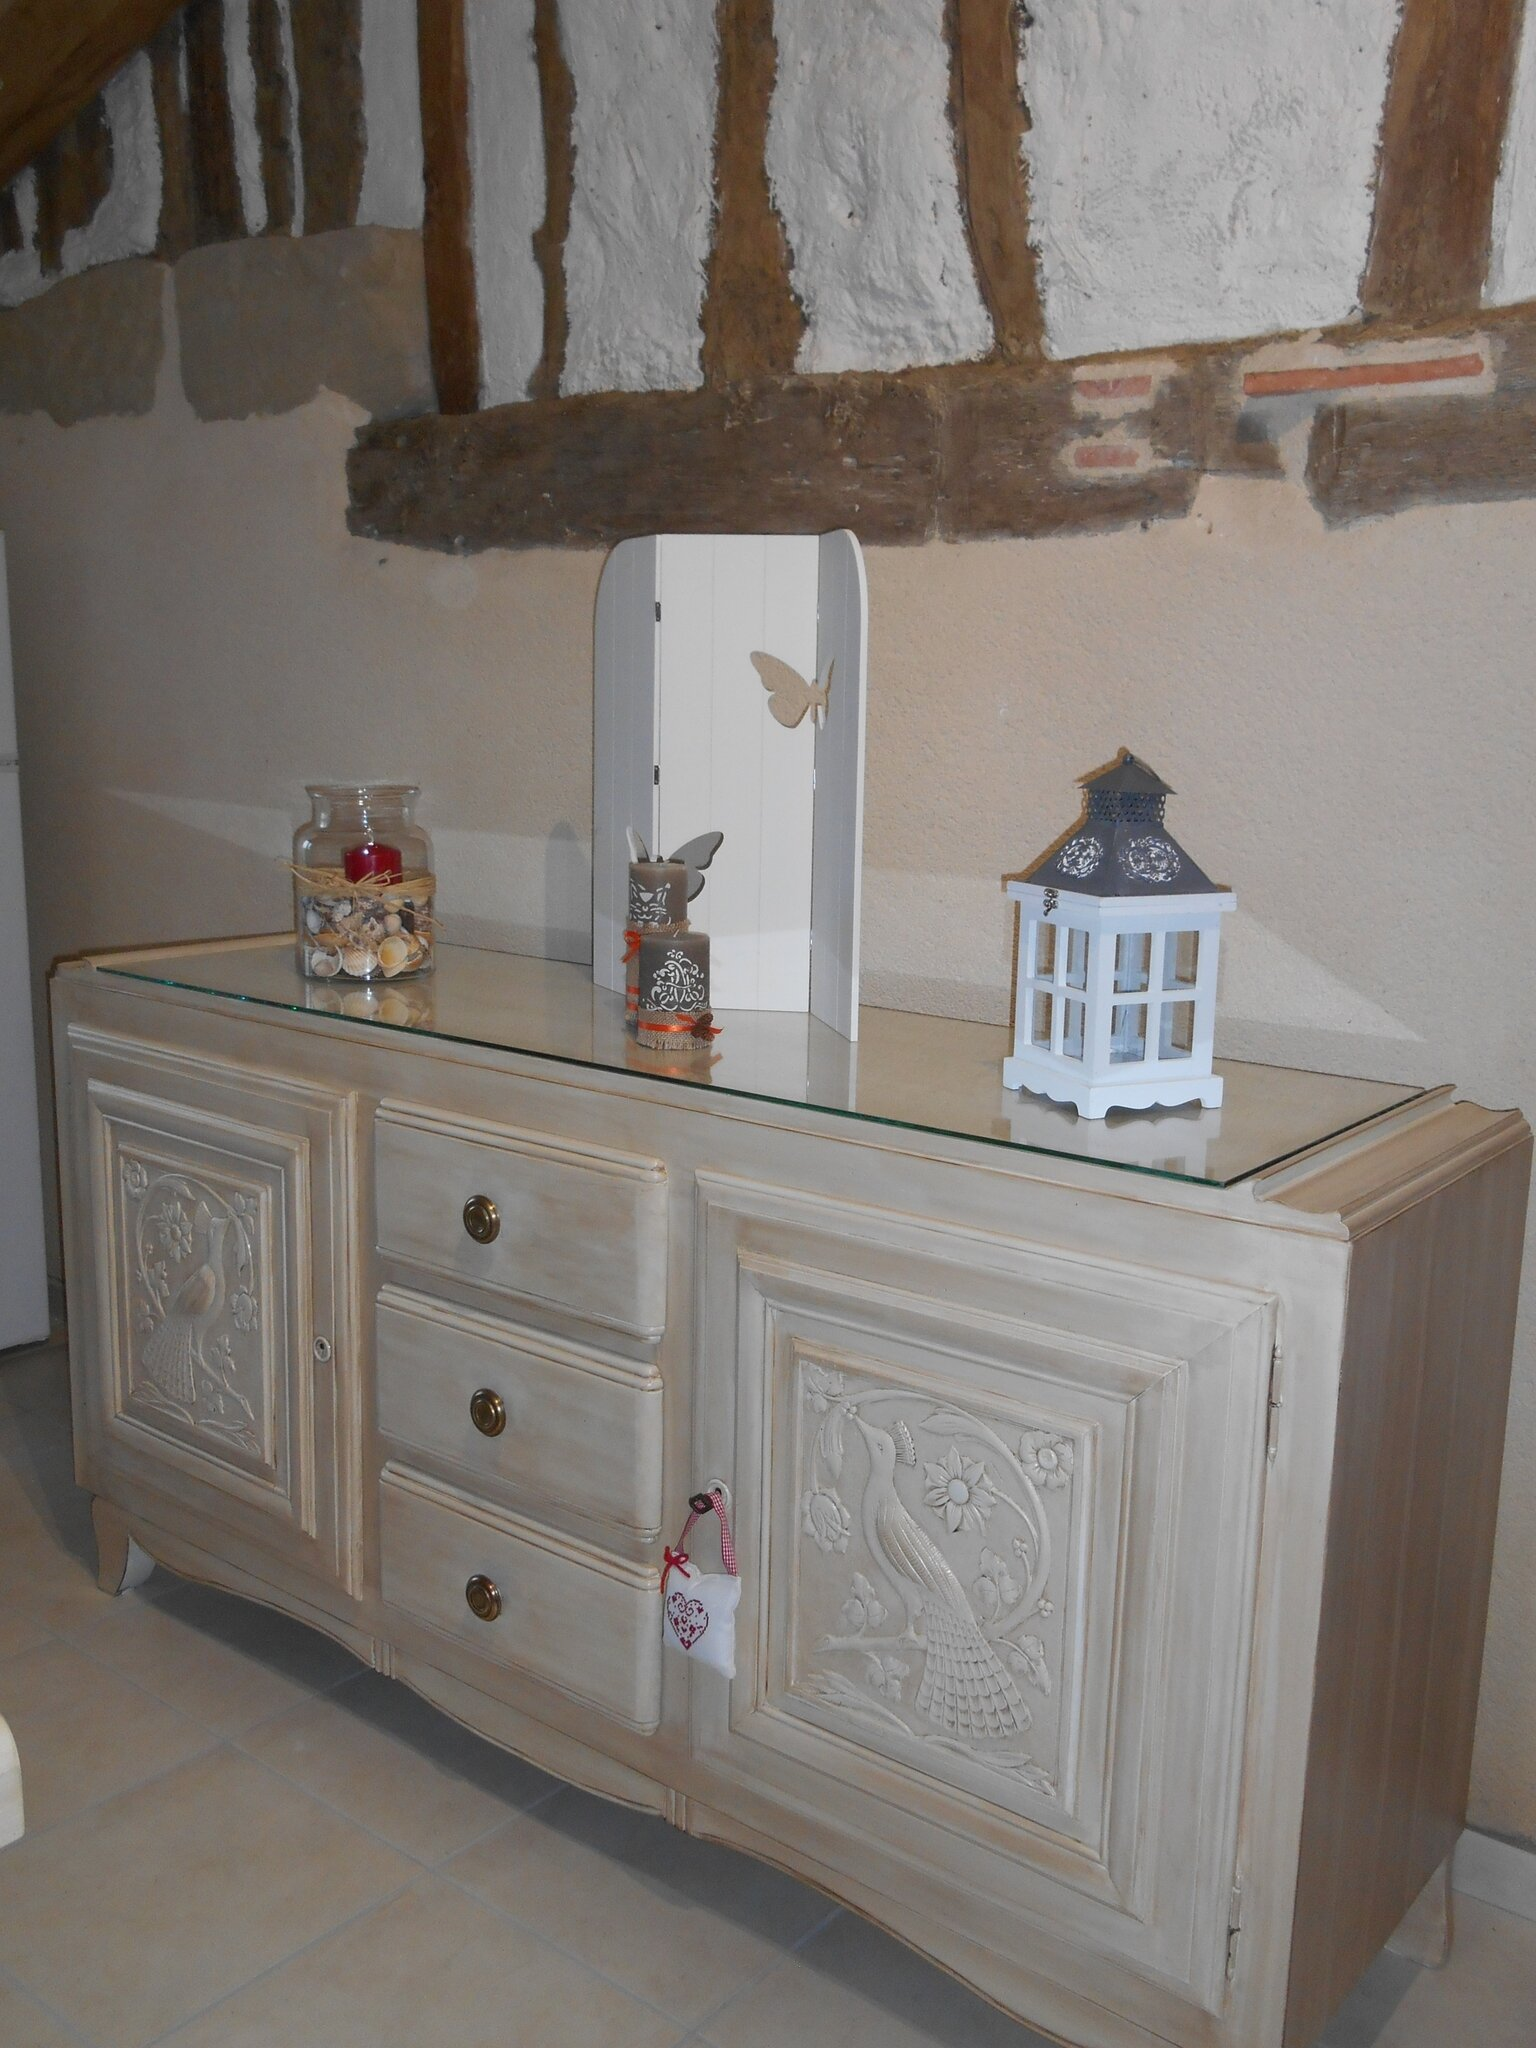 Relook Bois Craie Fabulous Le Buffet Mado Anmone With